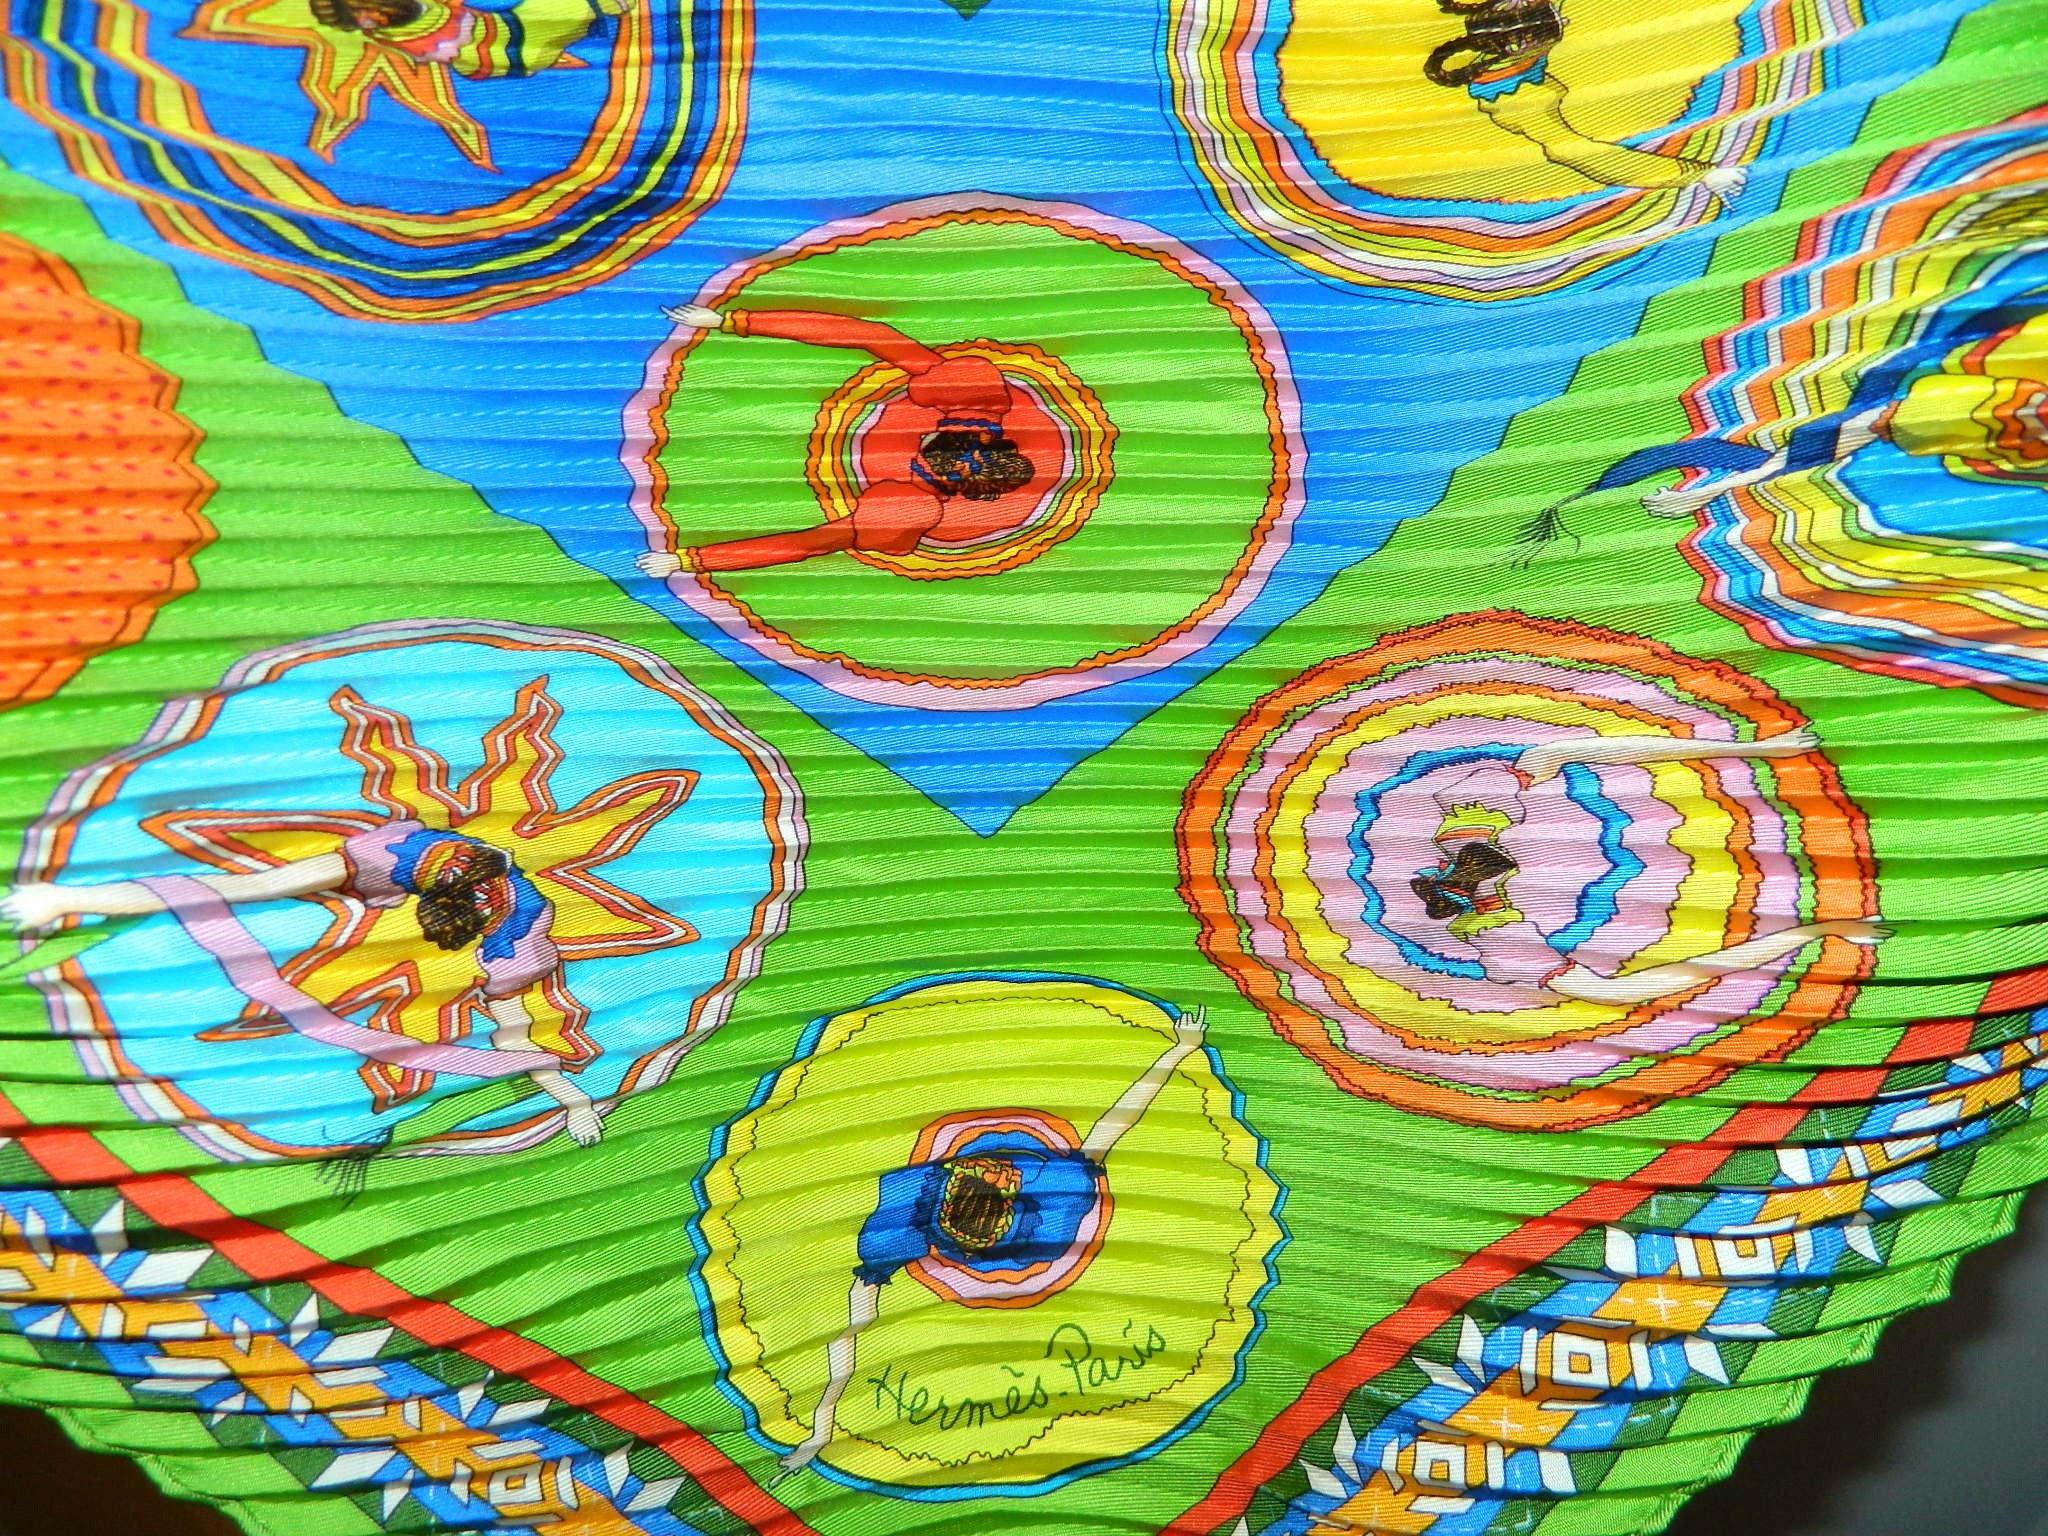 HERMES Belles de Mexique plisse silk scarf 2007 Virginie Jamin bright green / booklet and box